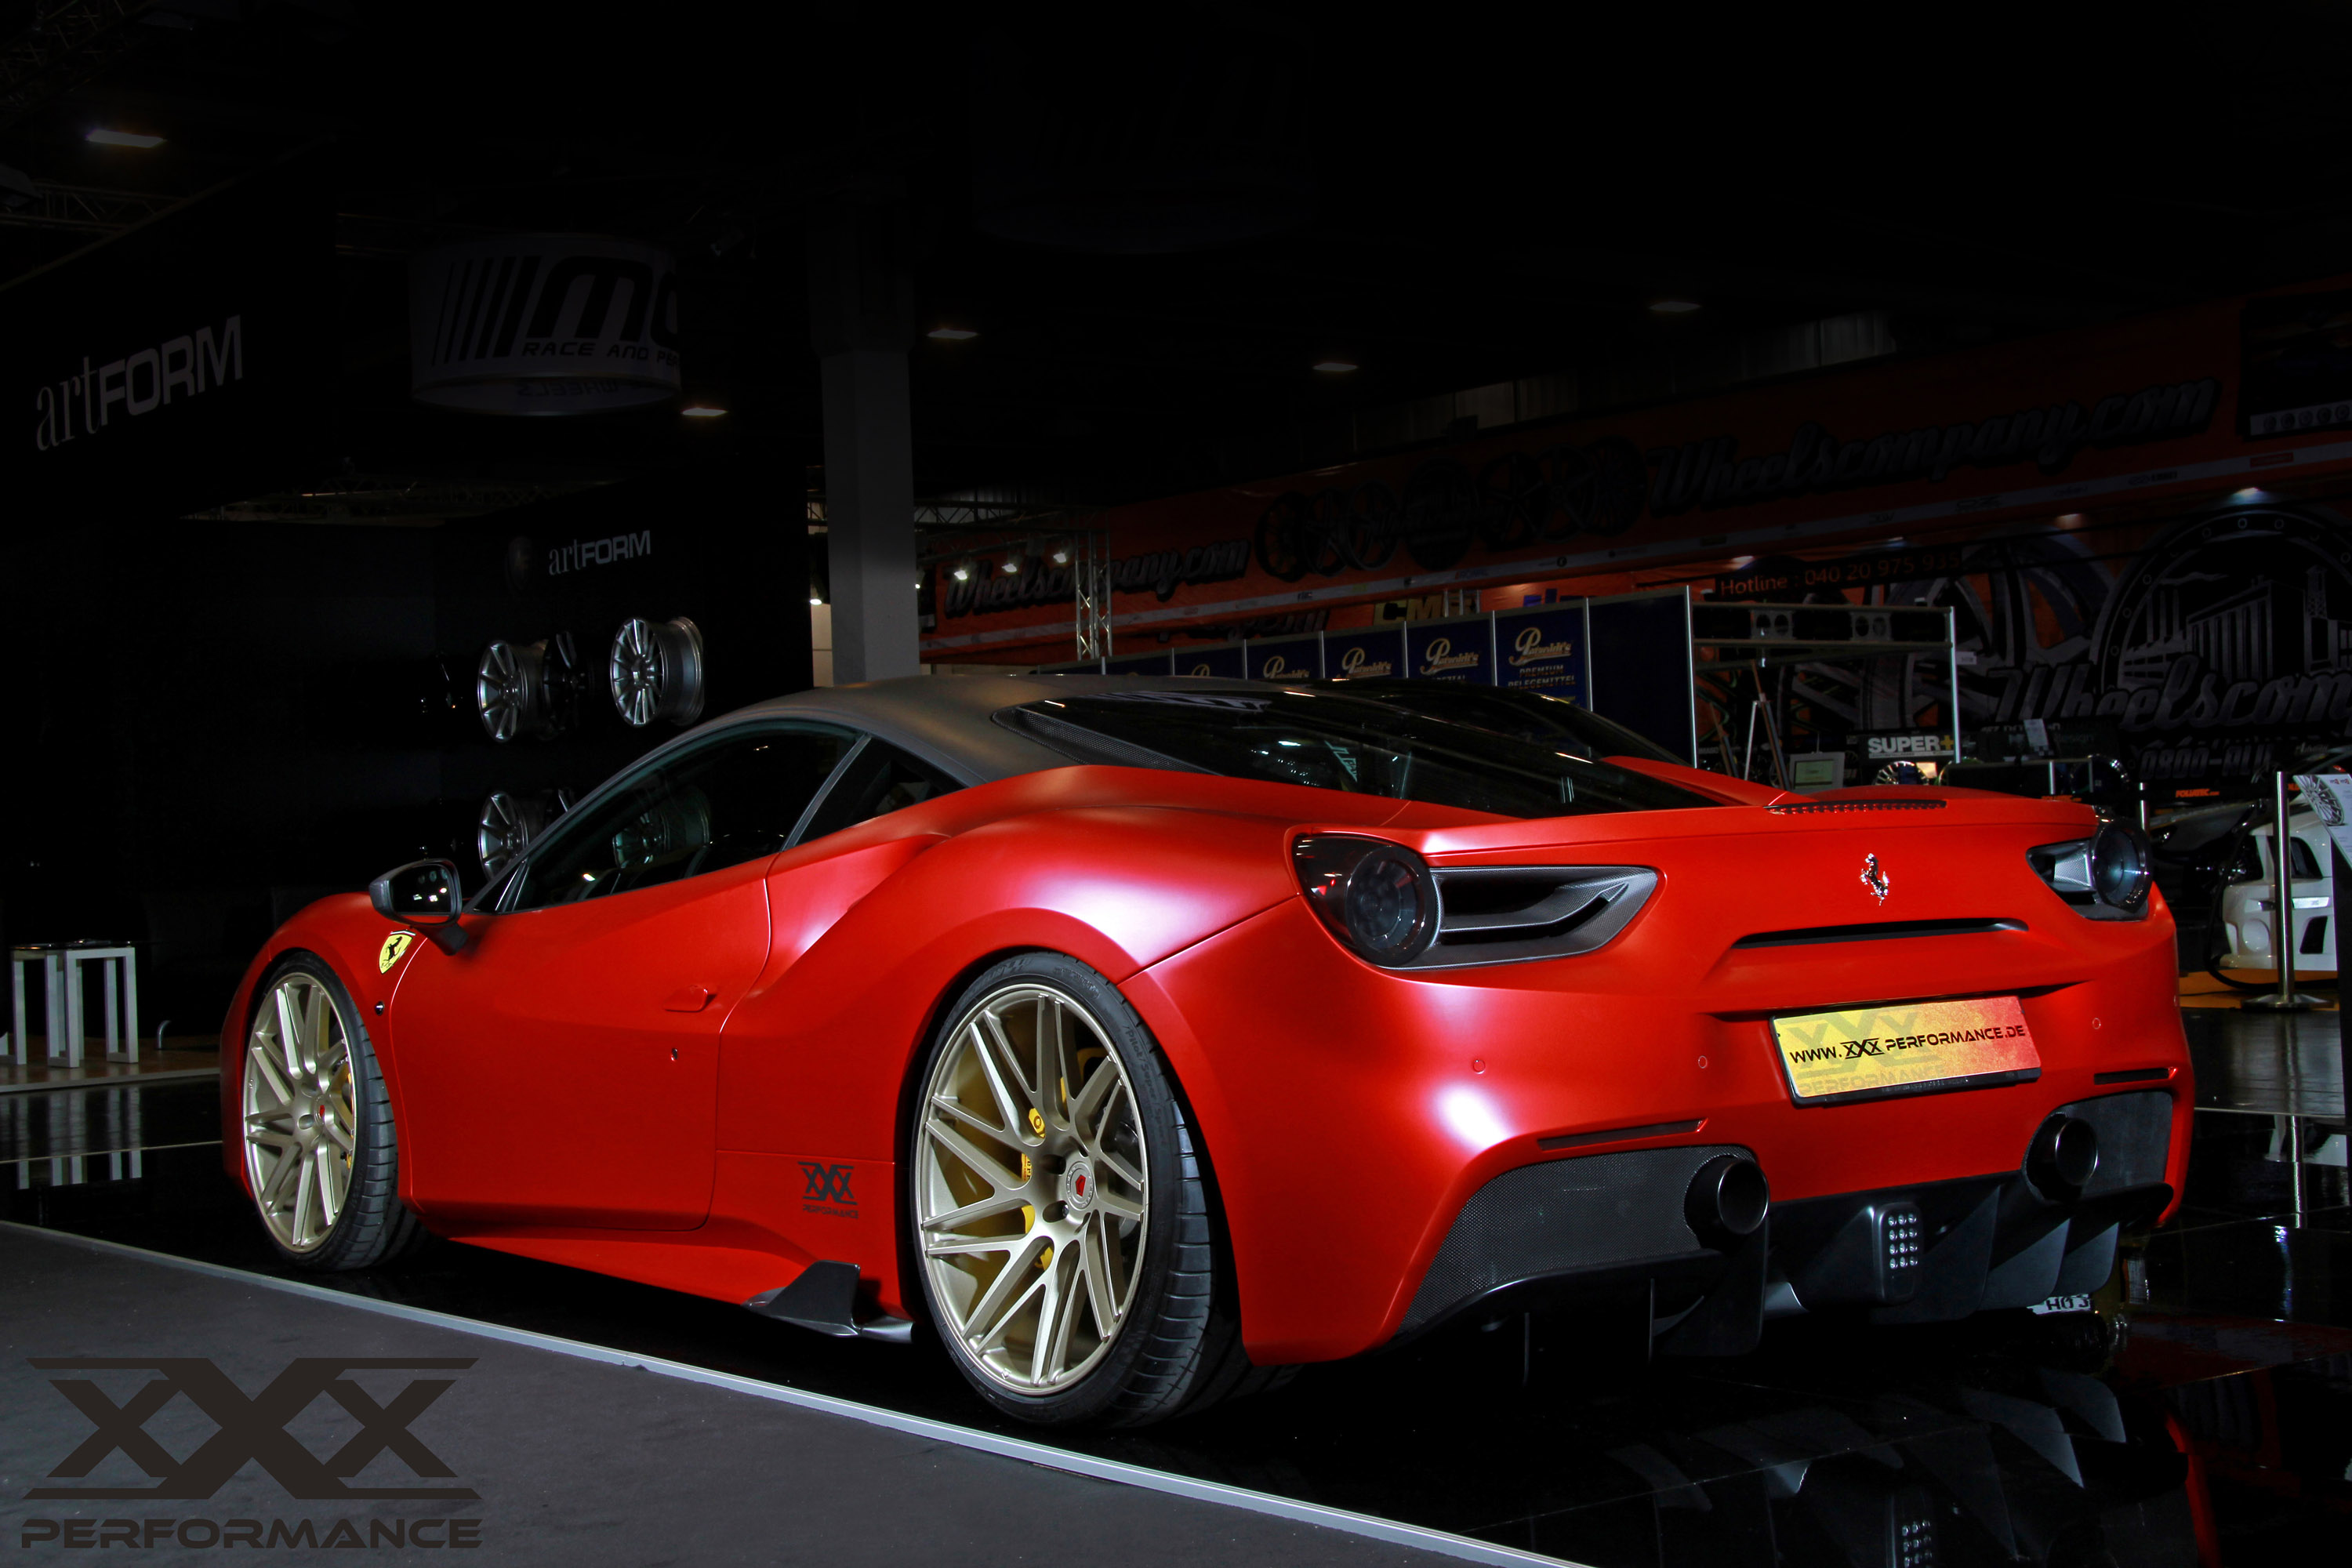 Xxx Performance Ferrari 488 Gtb Makes Furore At The Essen